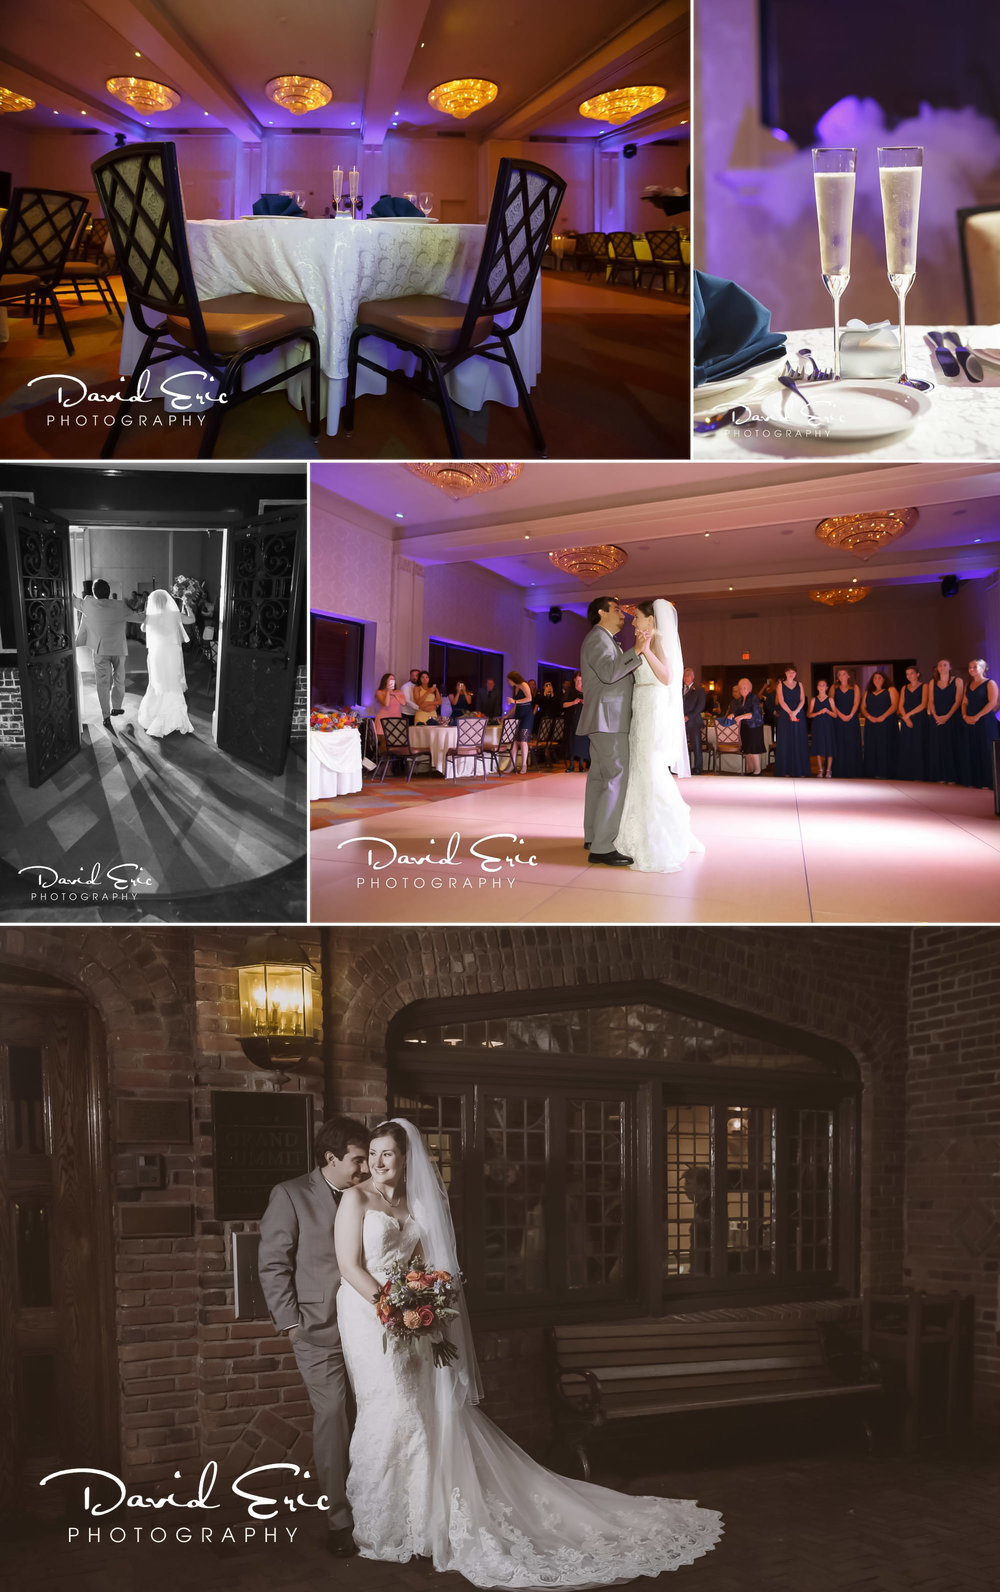 As A Winner Of Many Awards Jerry And Caroline Rizzo David Eric Photography Are Not Your Average Wedding Photographers They So Popular At The